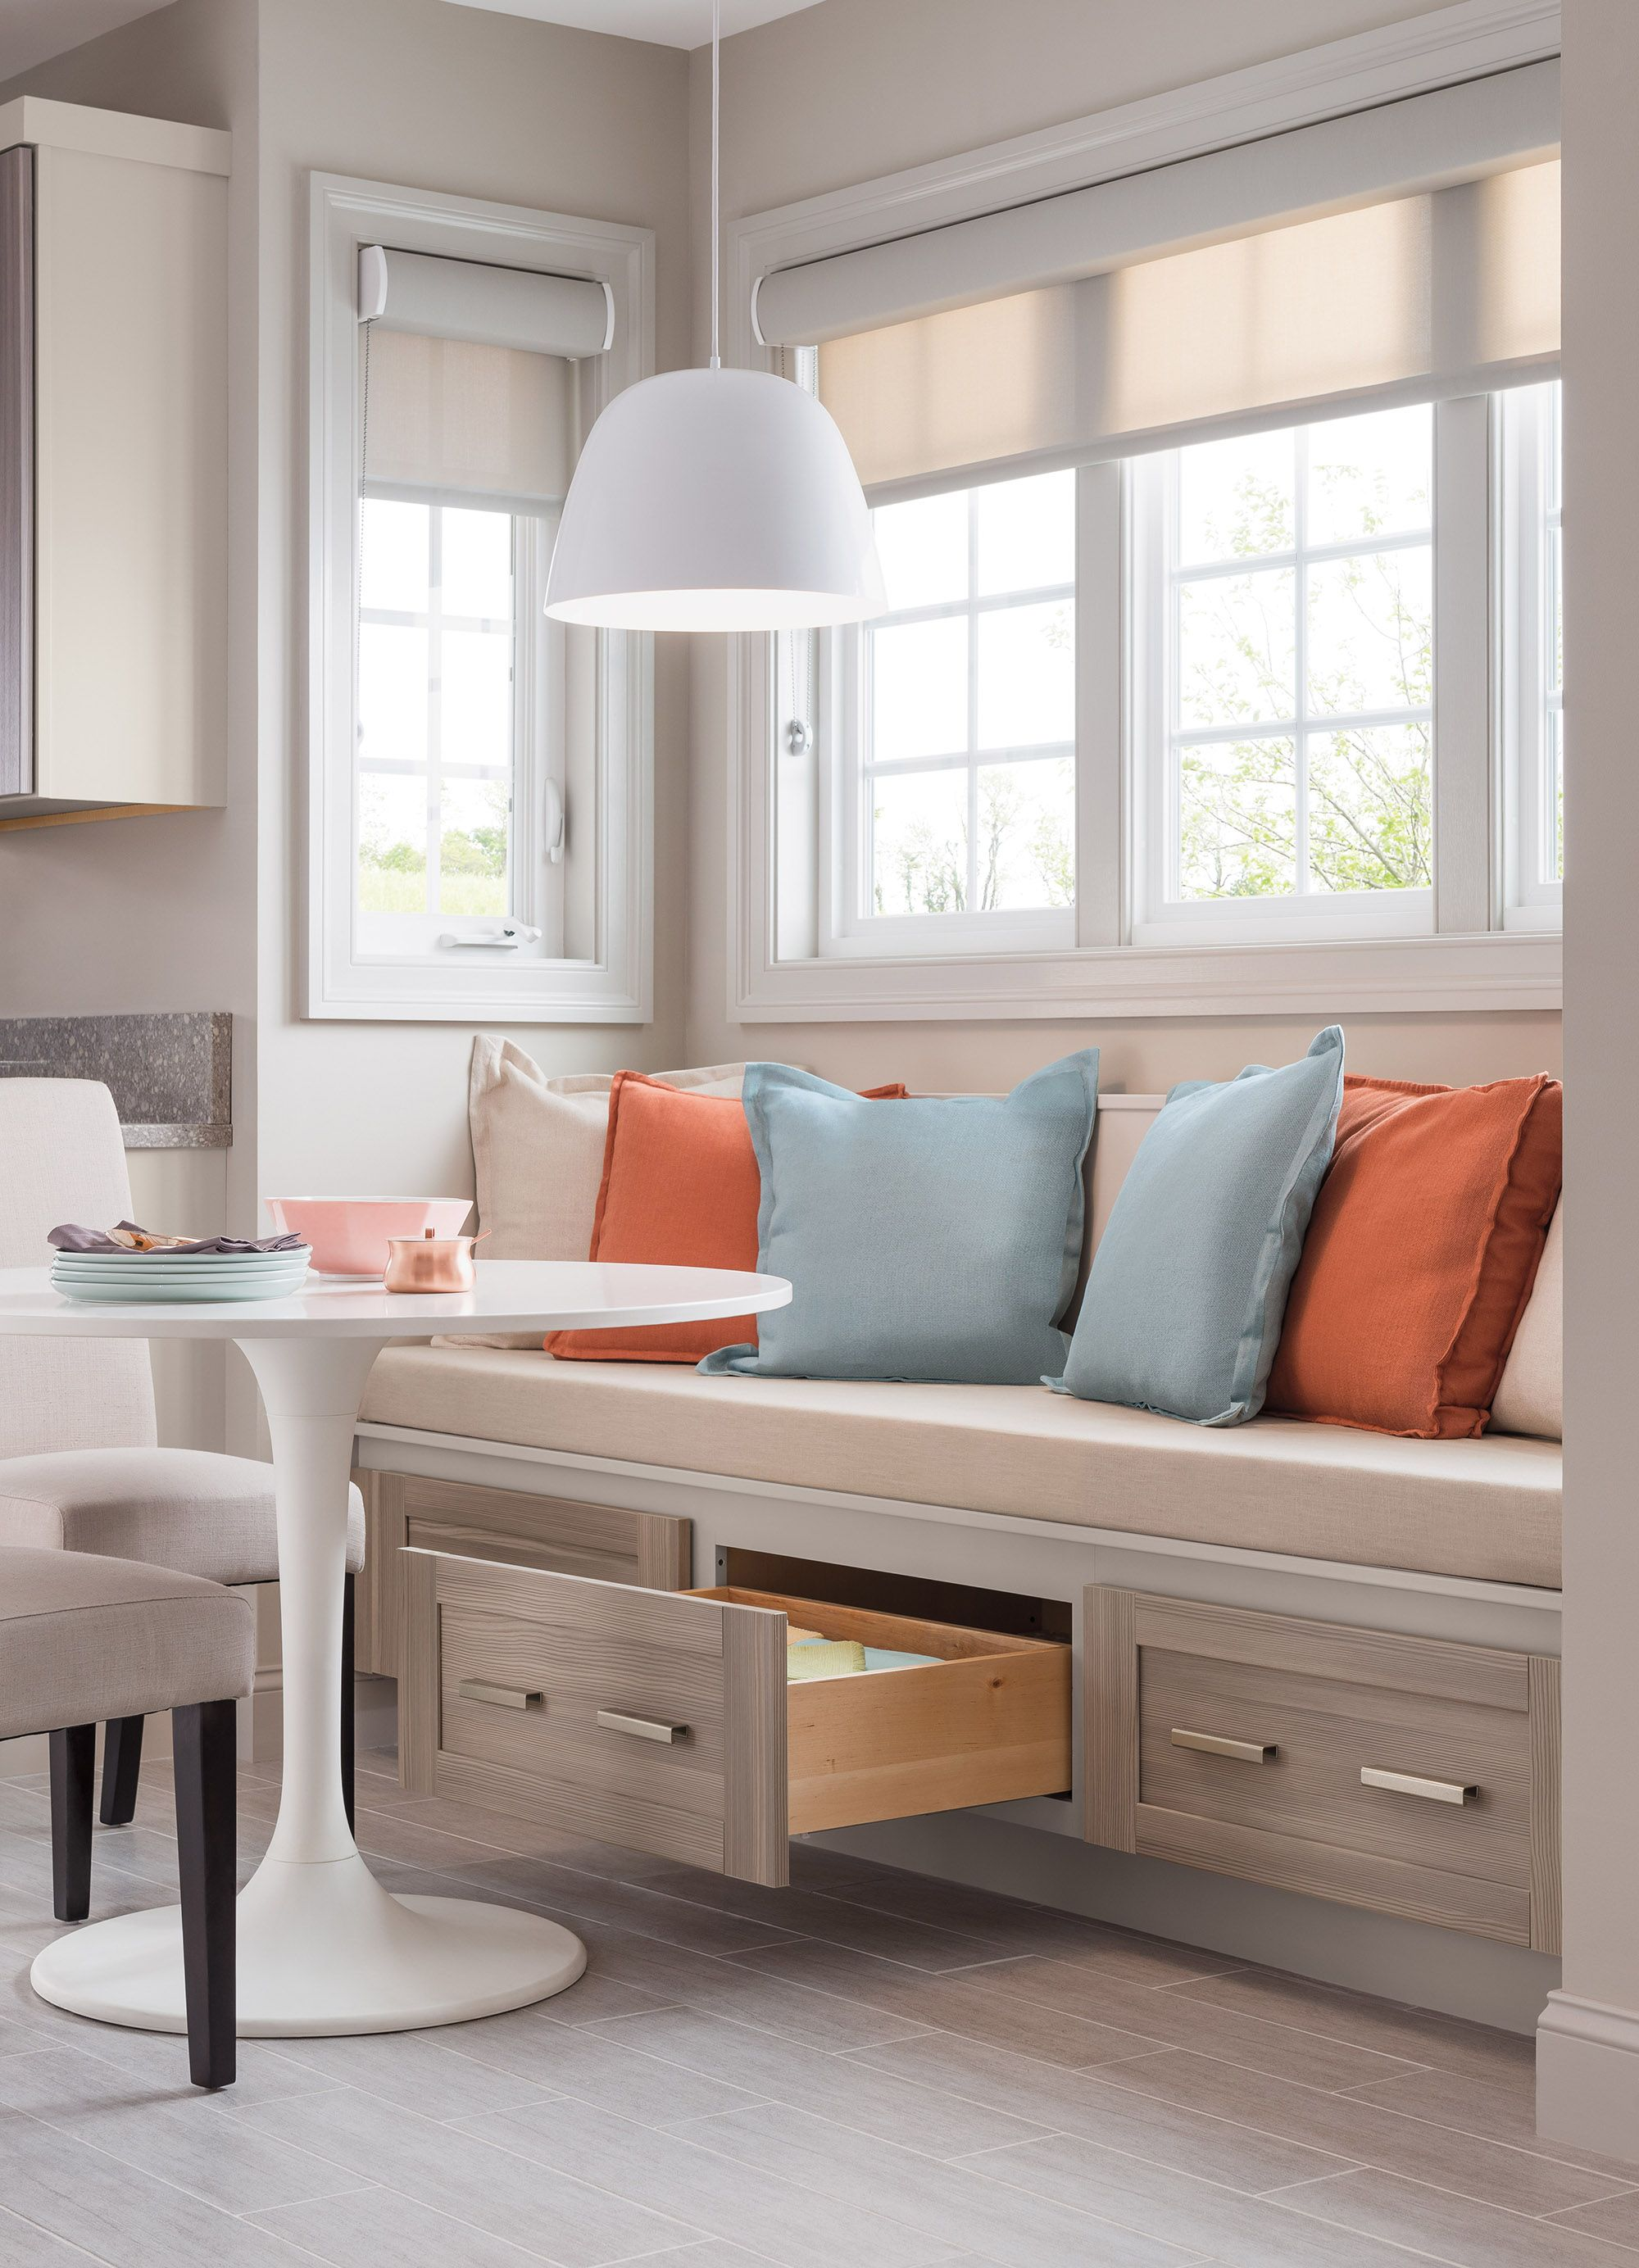 Double up with storage AND seating! More | The Bee Keepers Kitchen ...